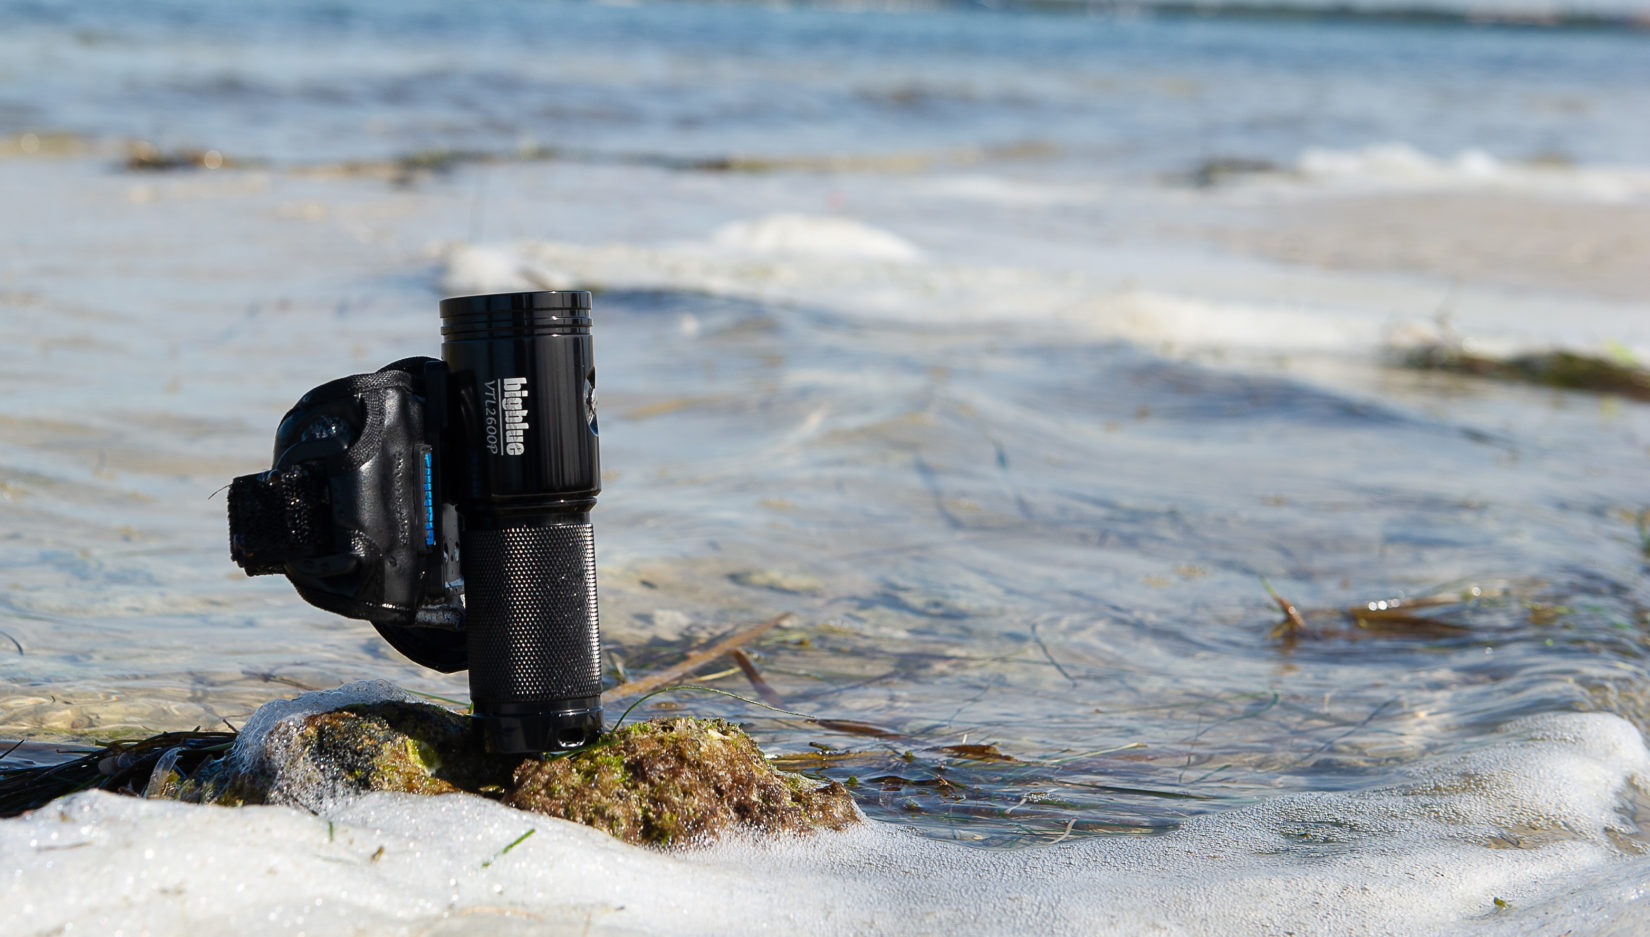 Ready for a Deep Dive into Photo and Video Lights with Bigblue Dive Lights